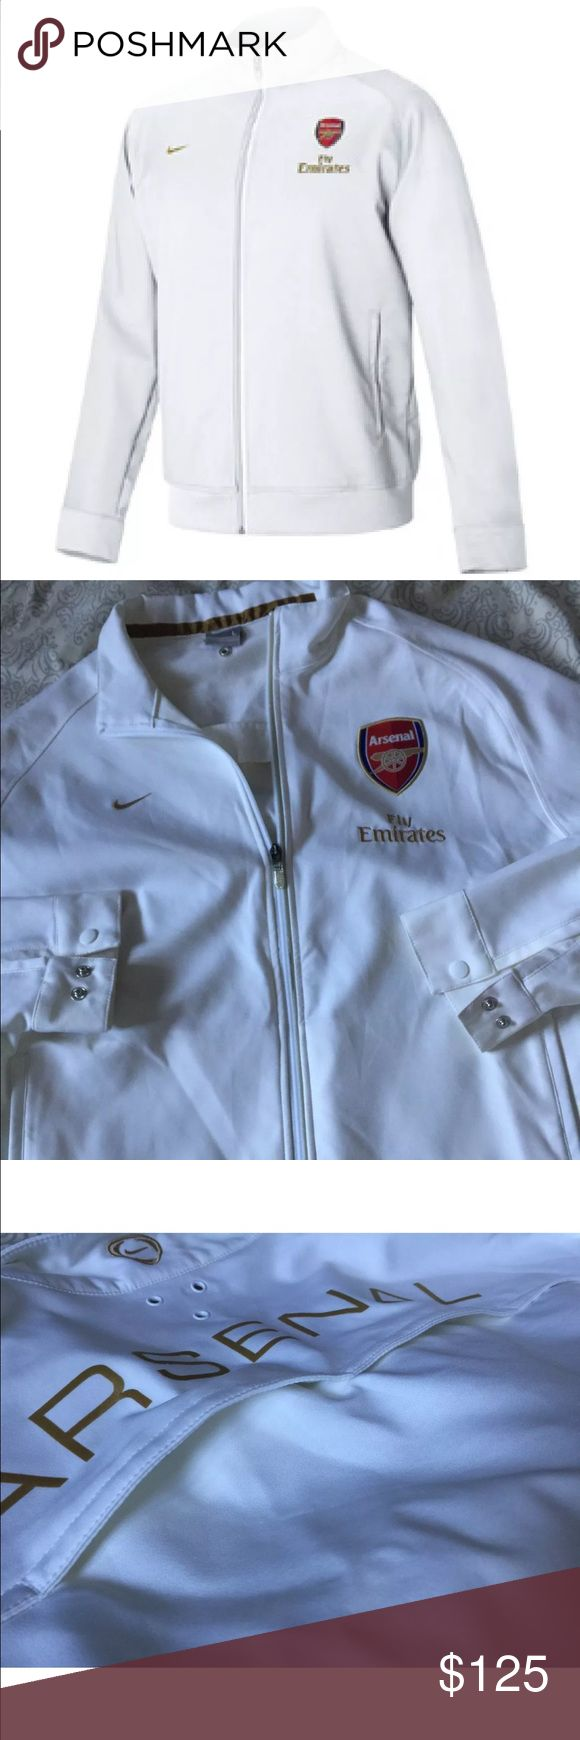 Arsenal official Nike Arsenal Training Jacket new Celebrate Arsenal soccer by sporting this official Nike Arsenal Line Up Training Jacket! 